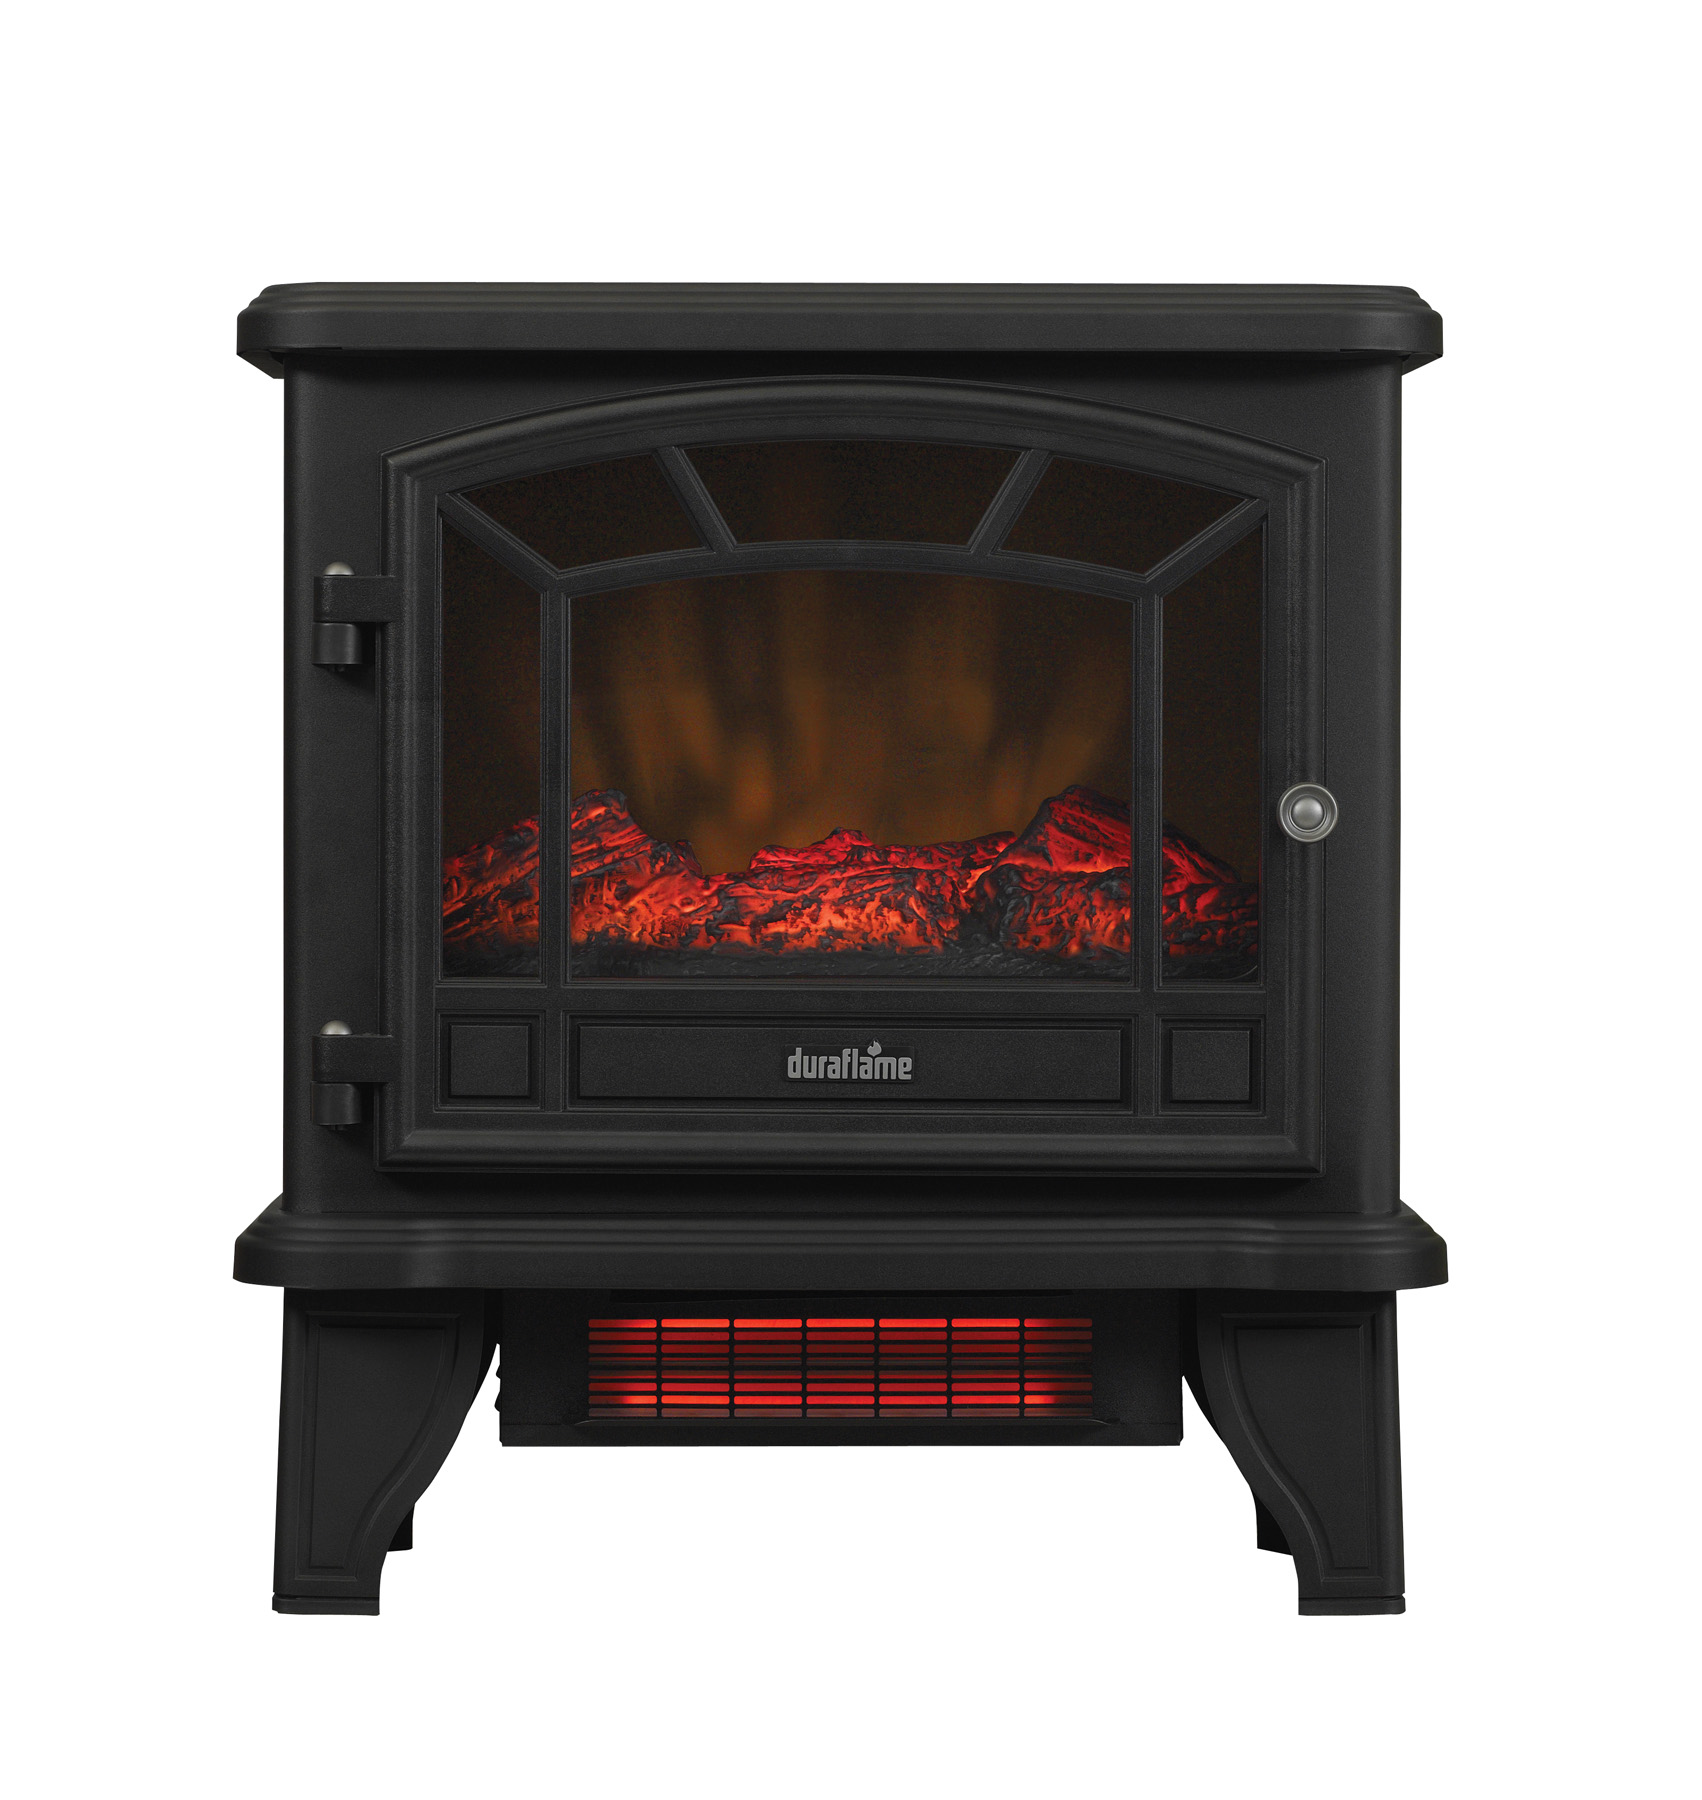 Duraflame Freestanding Infrared Quartz Fireplace Stove, Black ...